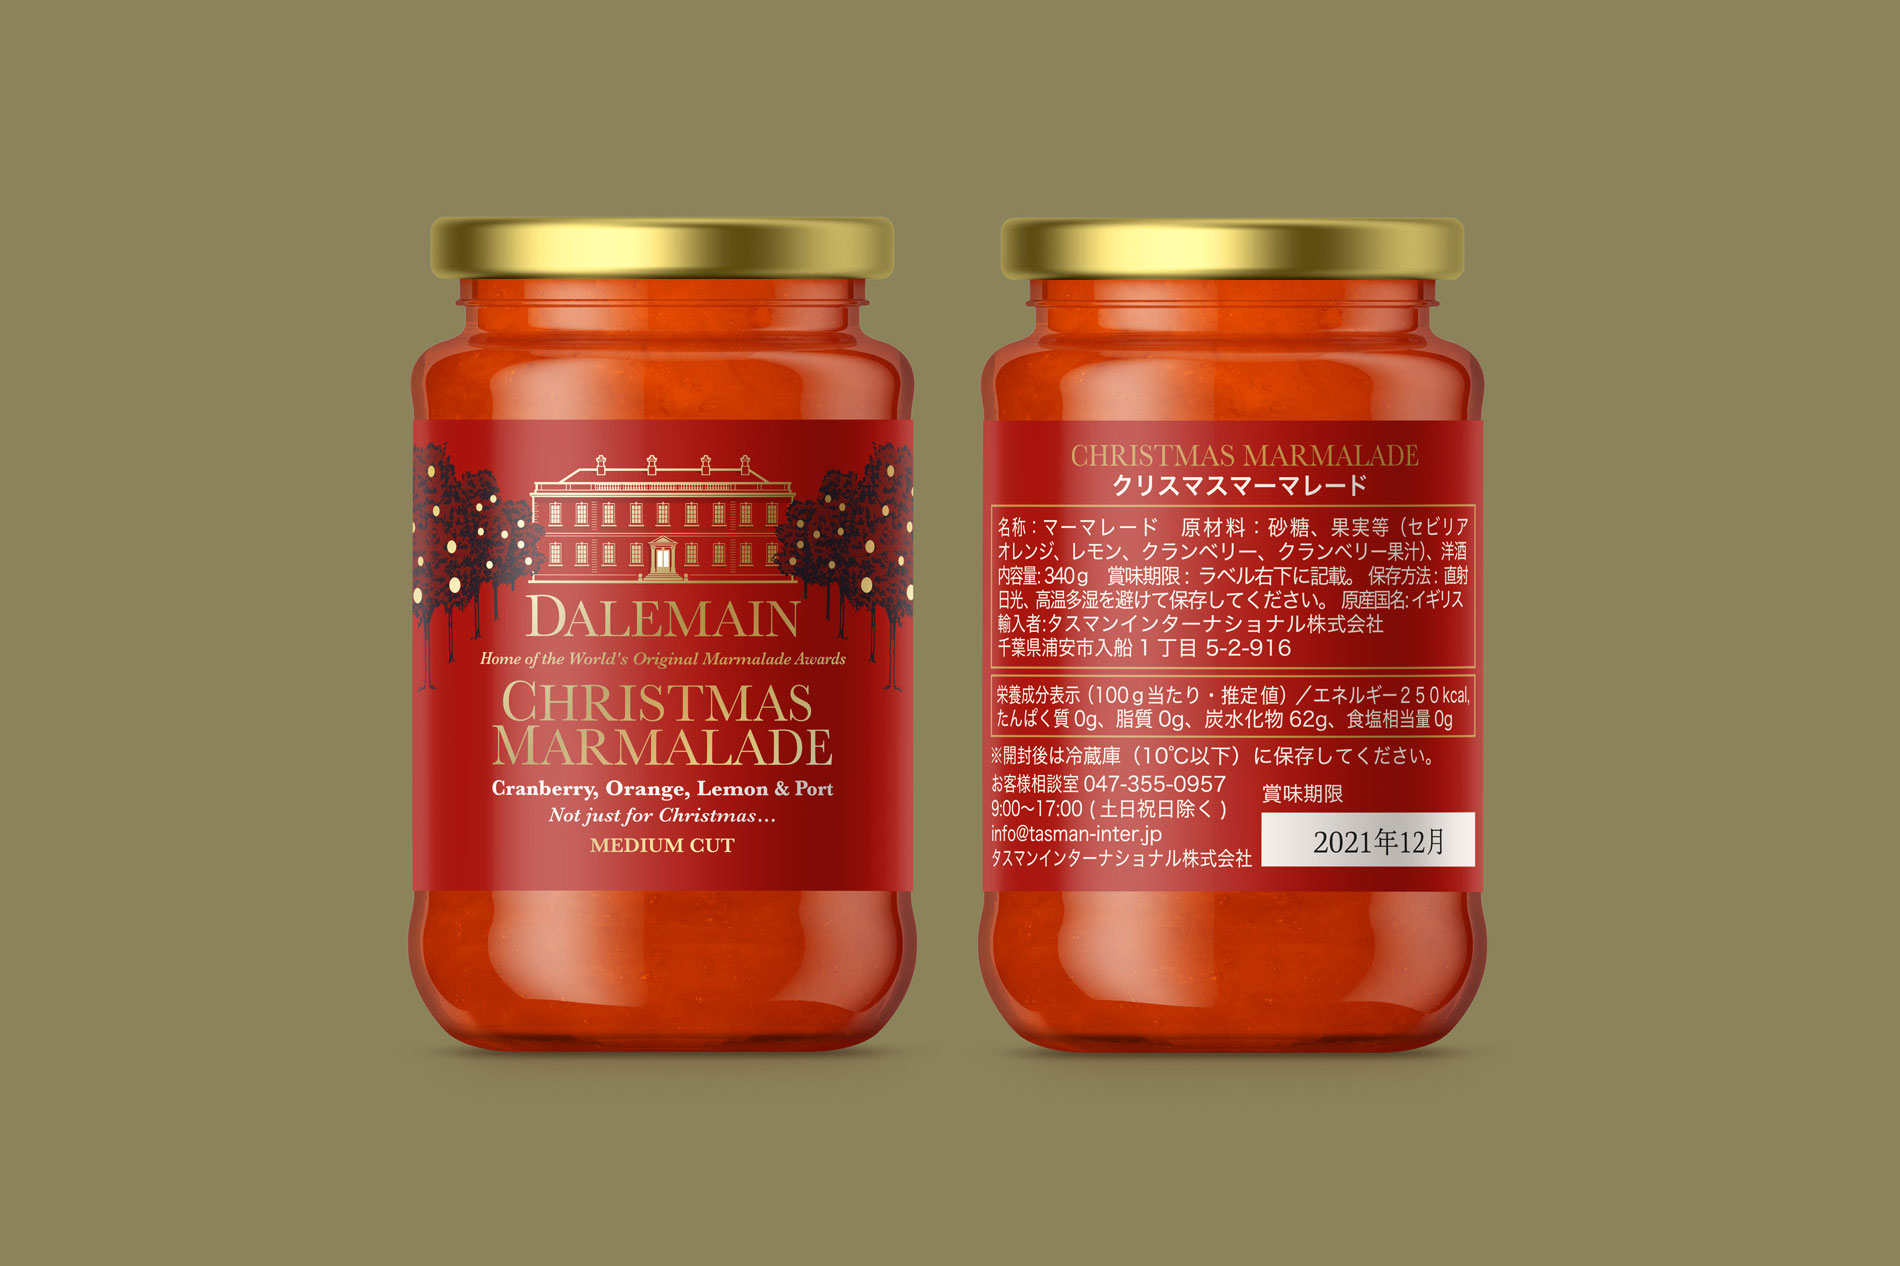 Dalemain Christmas Marmalade Jar Label Design